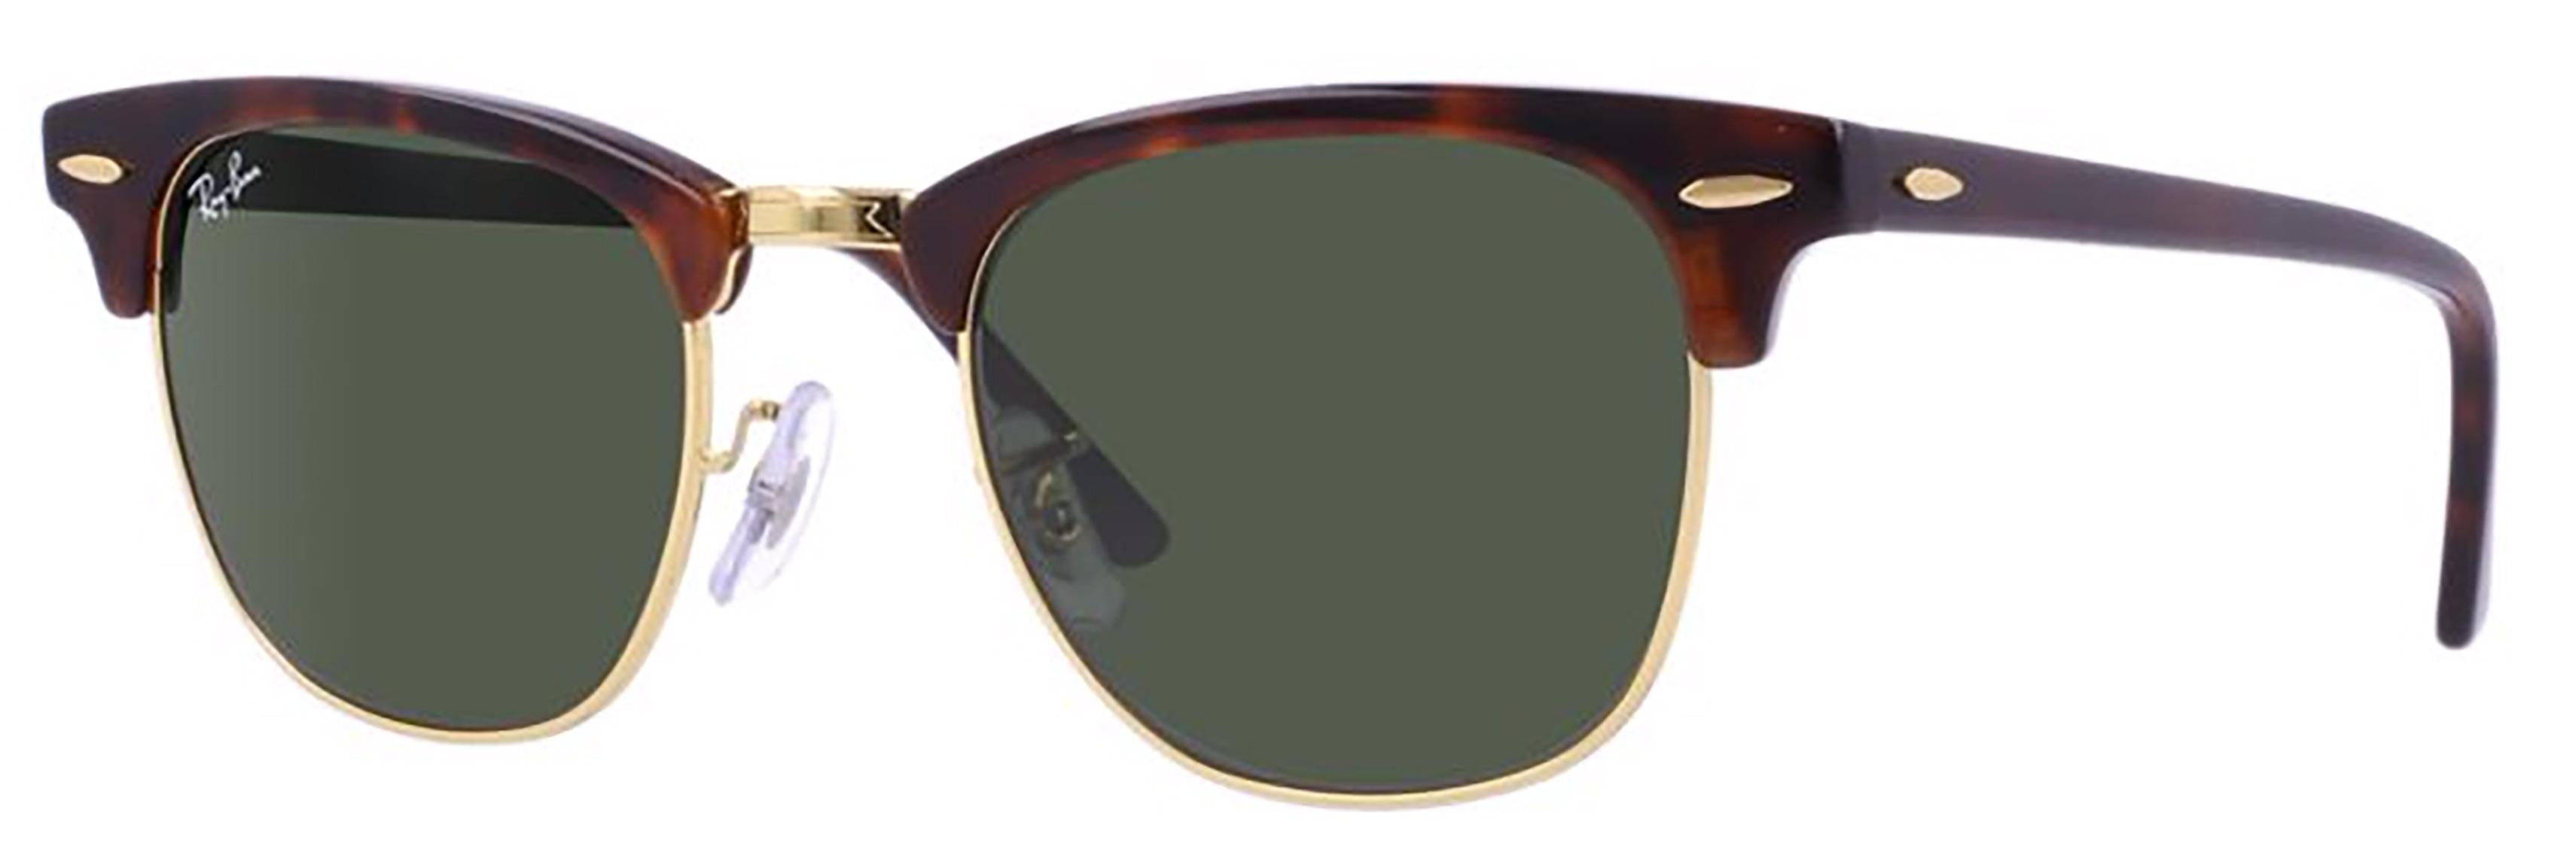 6119a17026 Ray Ban Company Worth « Heritage Malta